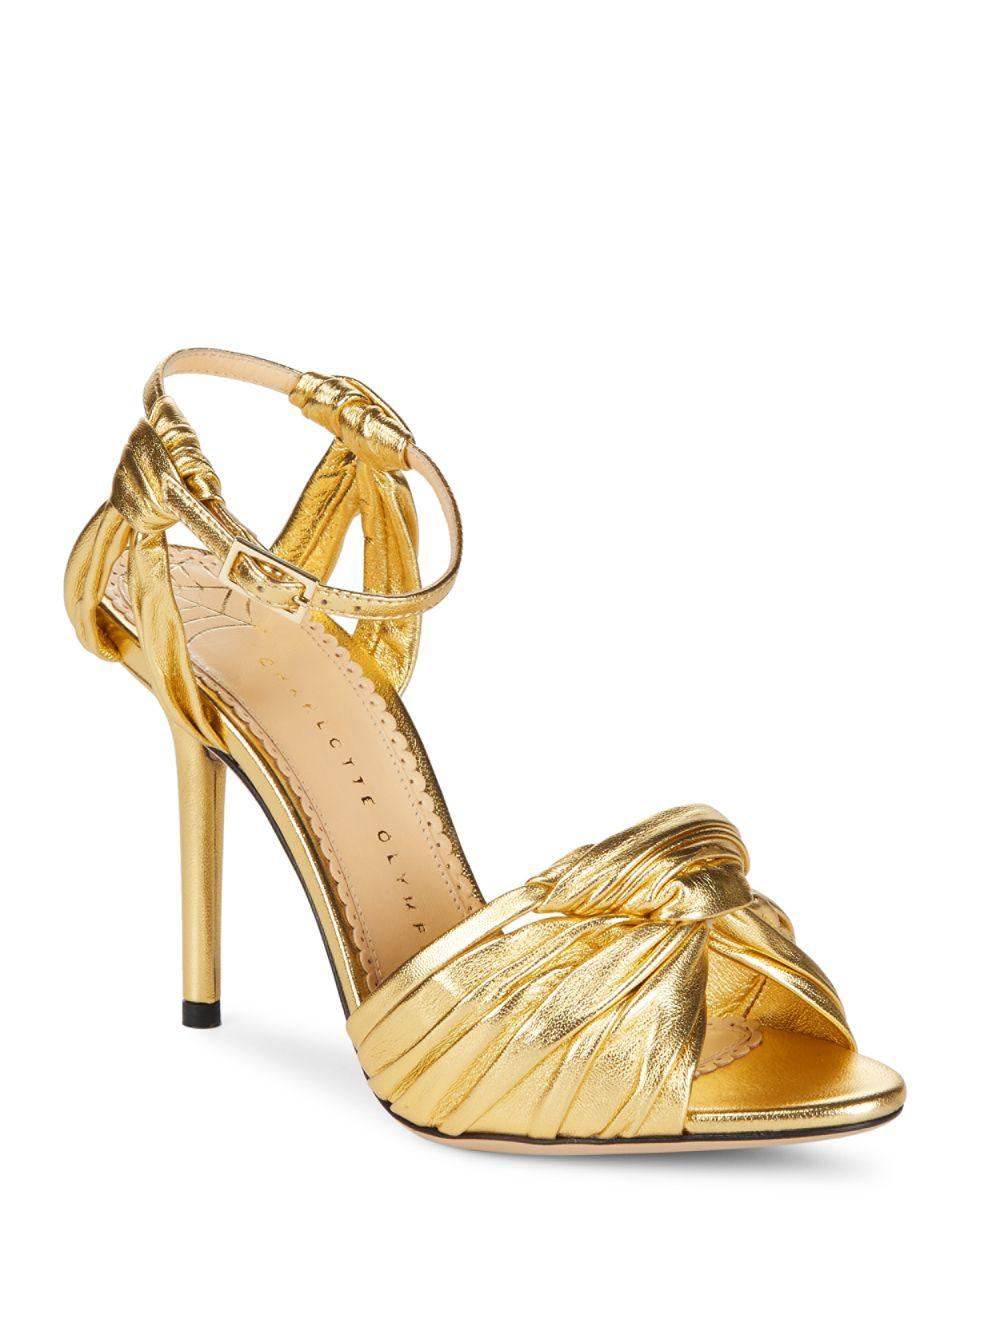 Charlotte Olympia Broadway 95 Sandal in